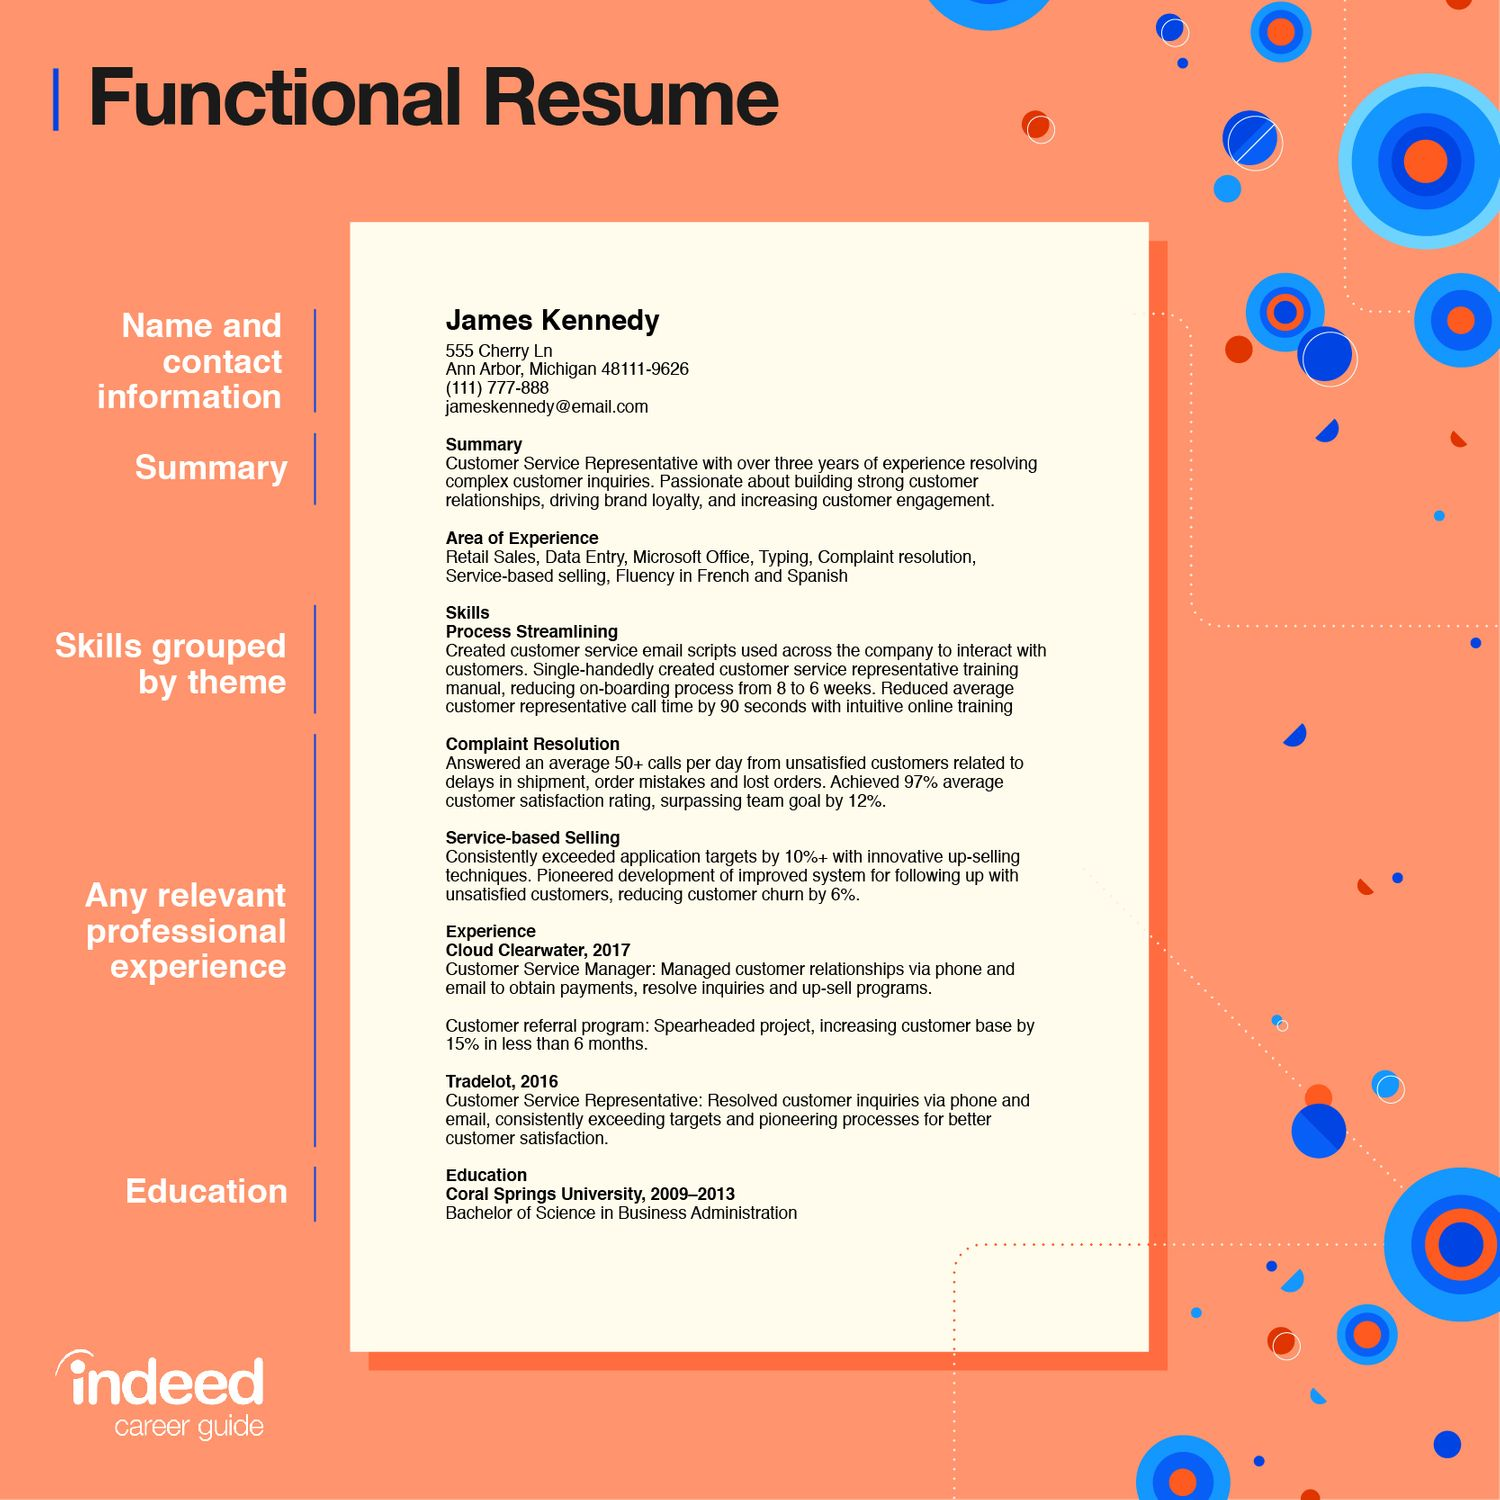 functional resume definition tips and examples indeed customer service resized scouting Resume Customer Service Functional Resume